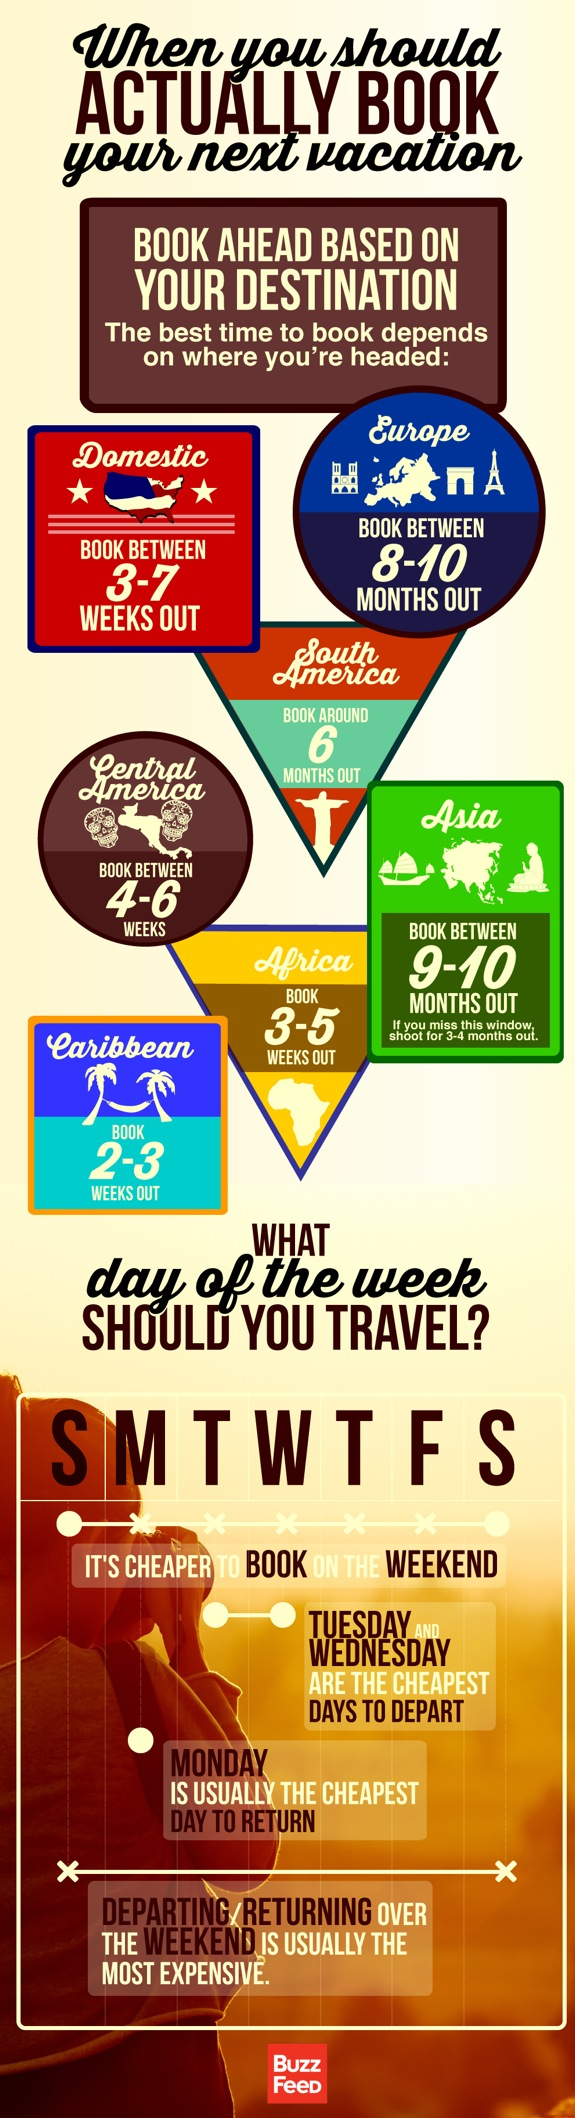 when to book vacation infographic 1 Infographic: When You Should Book Your Next Vacation